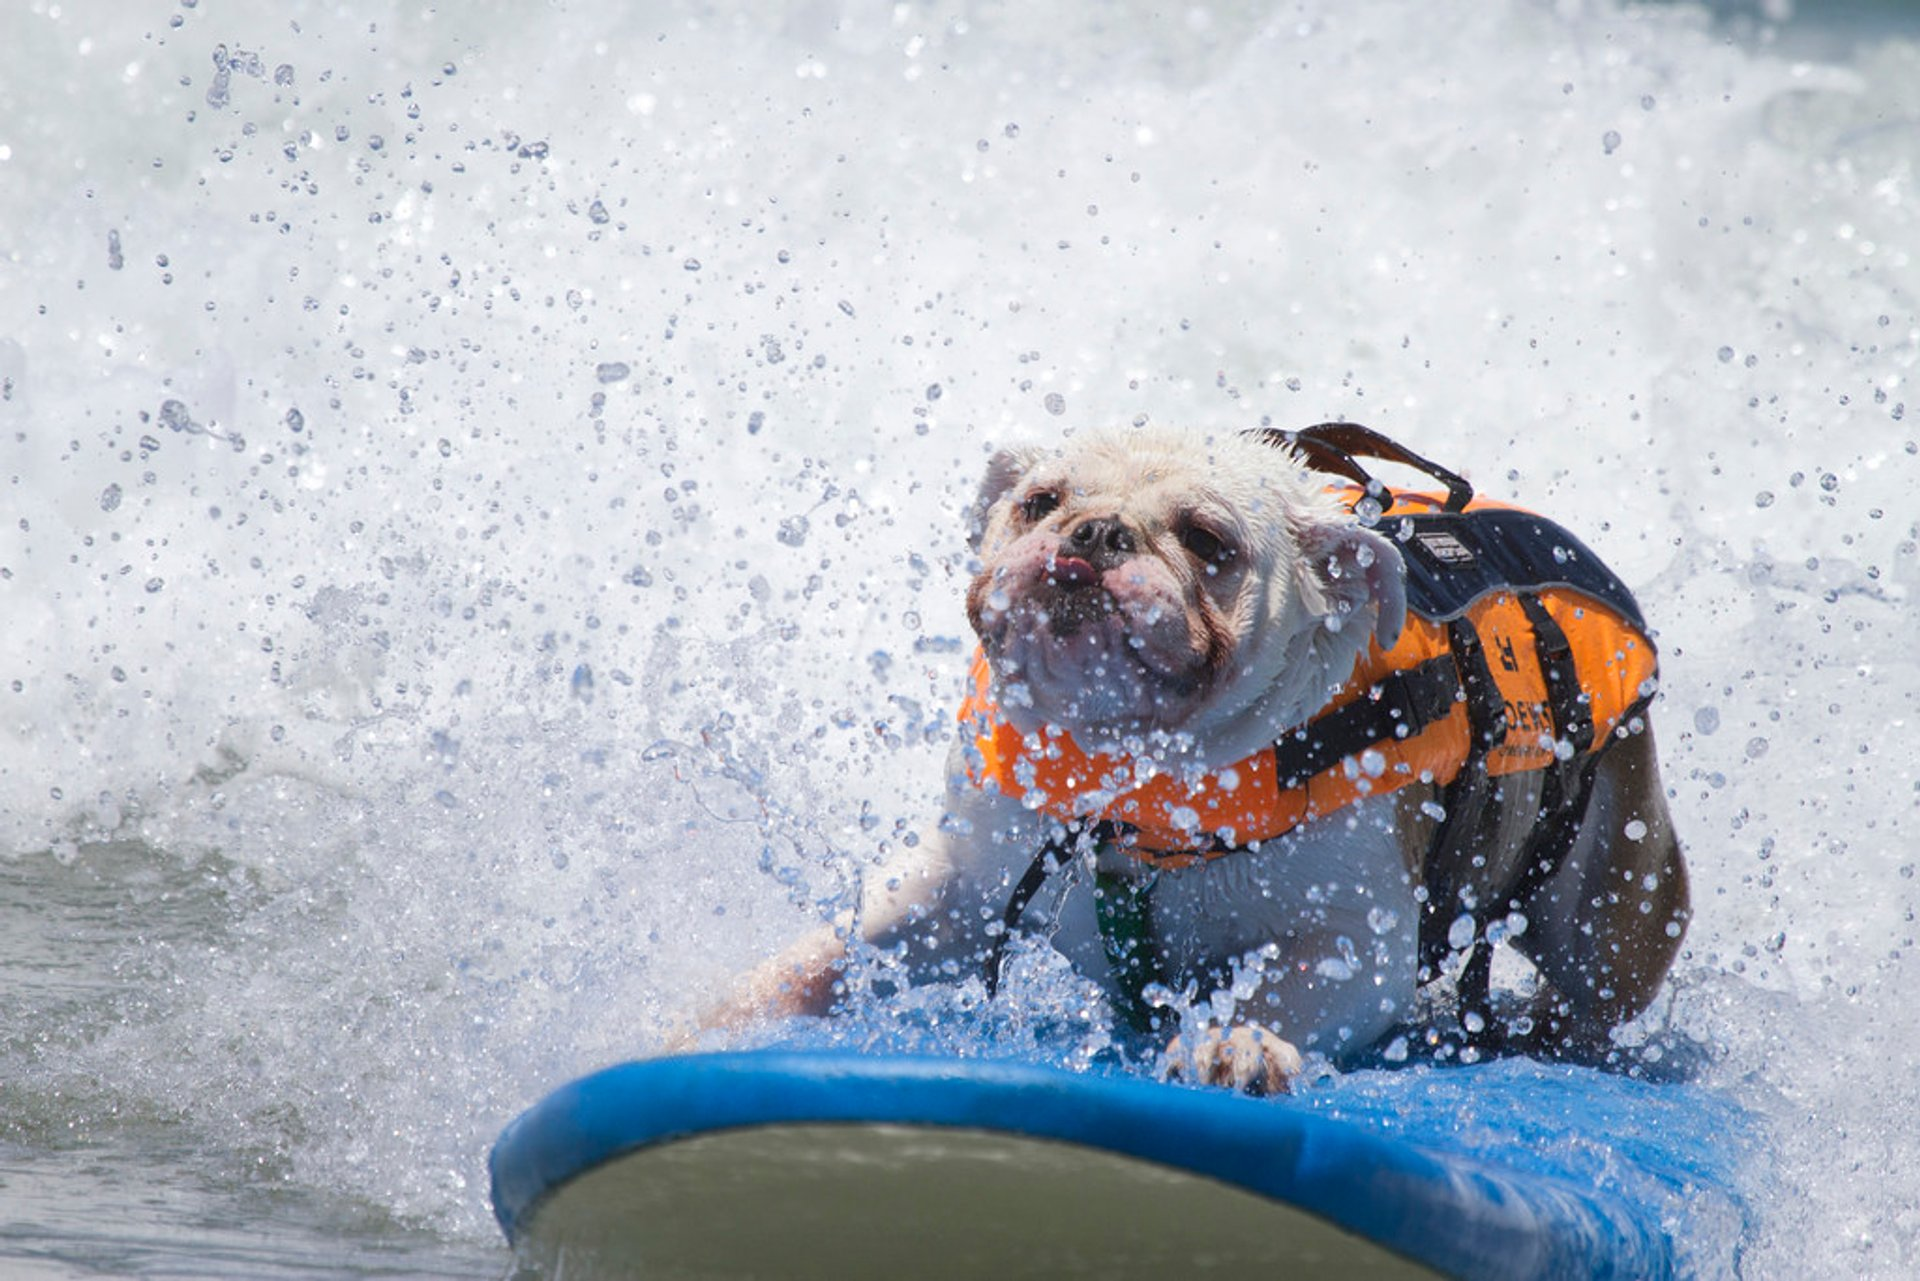 Surf Dog Competition in California - Best Season 2020